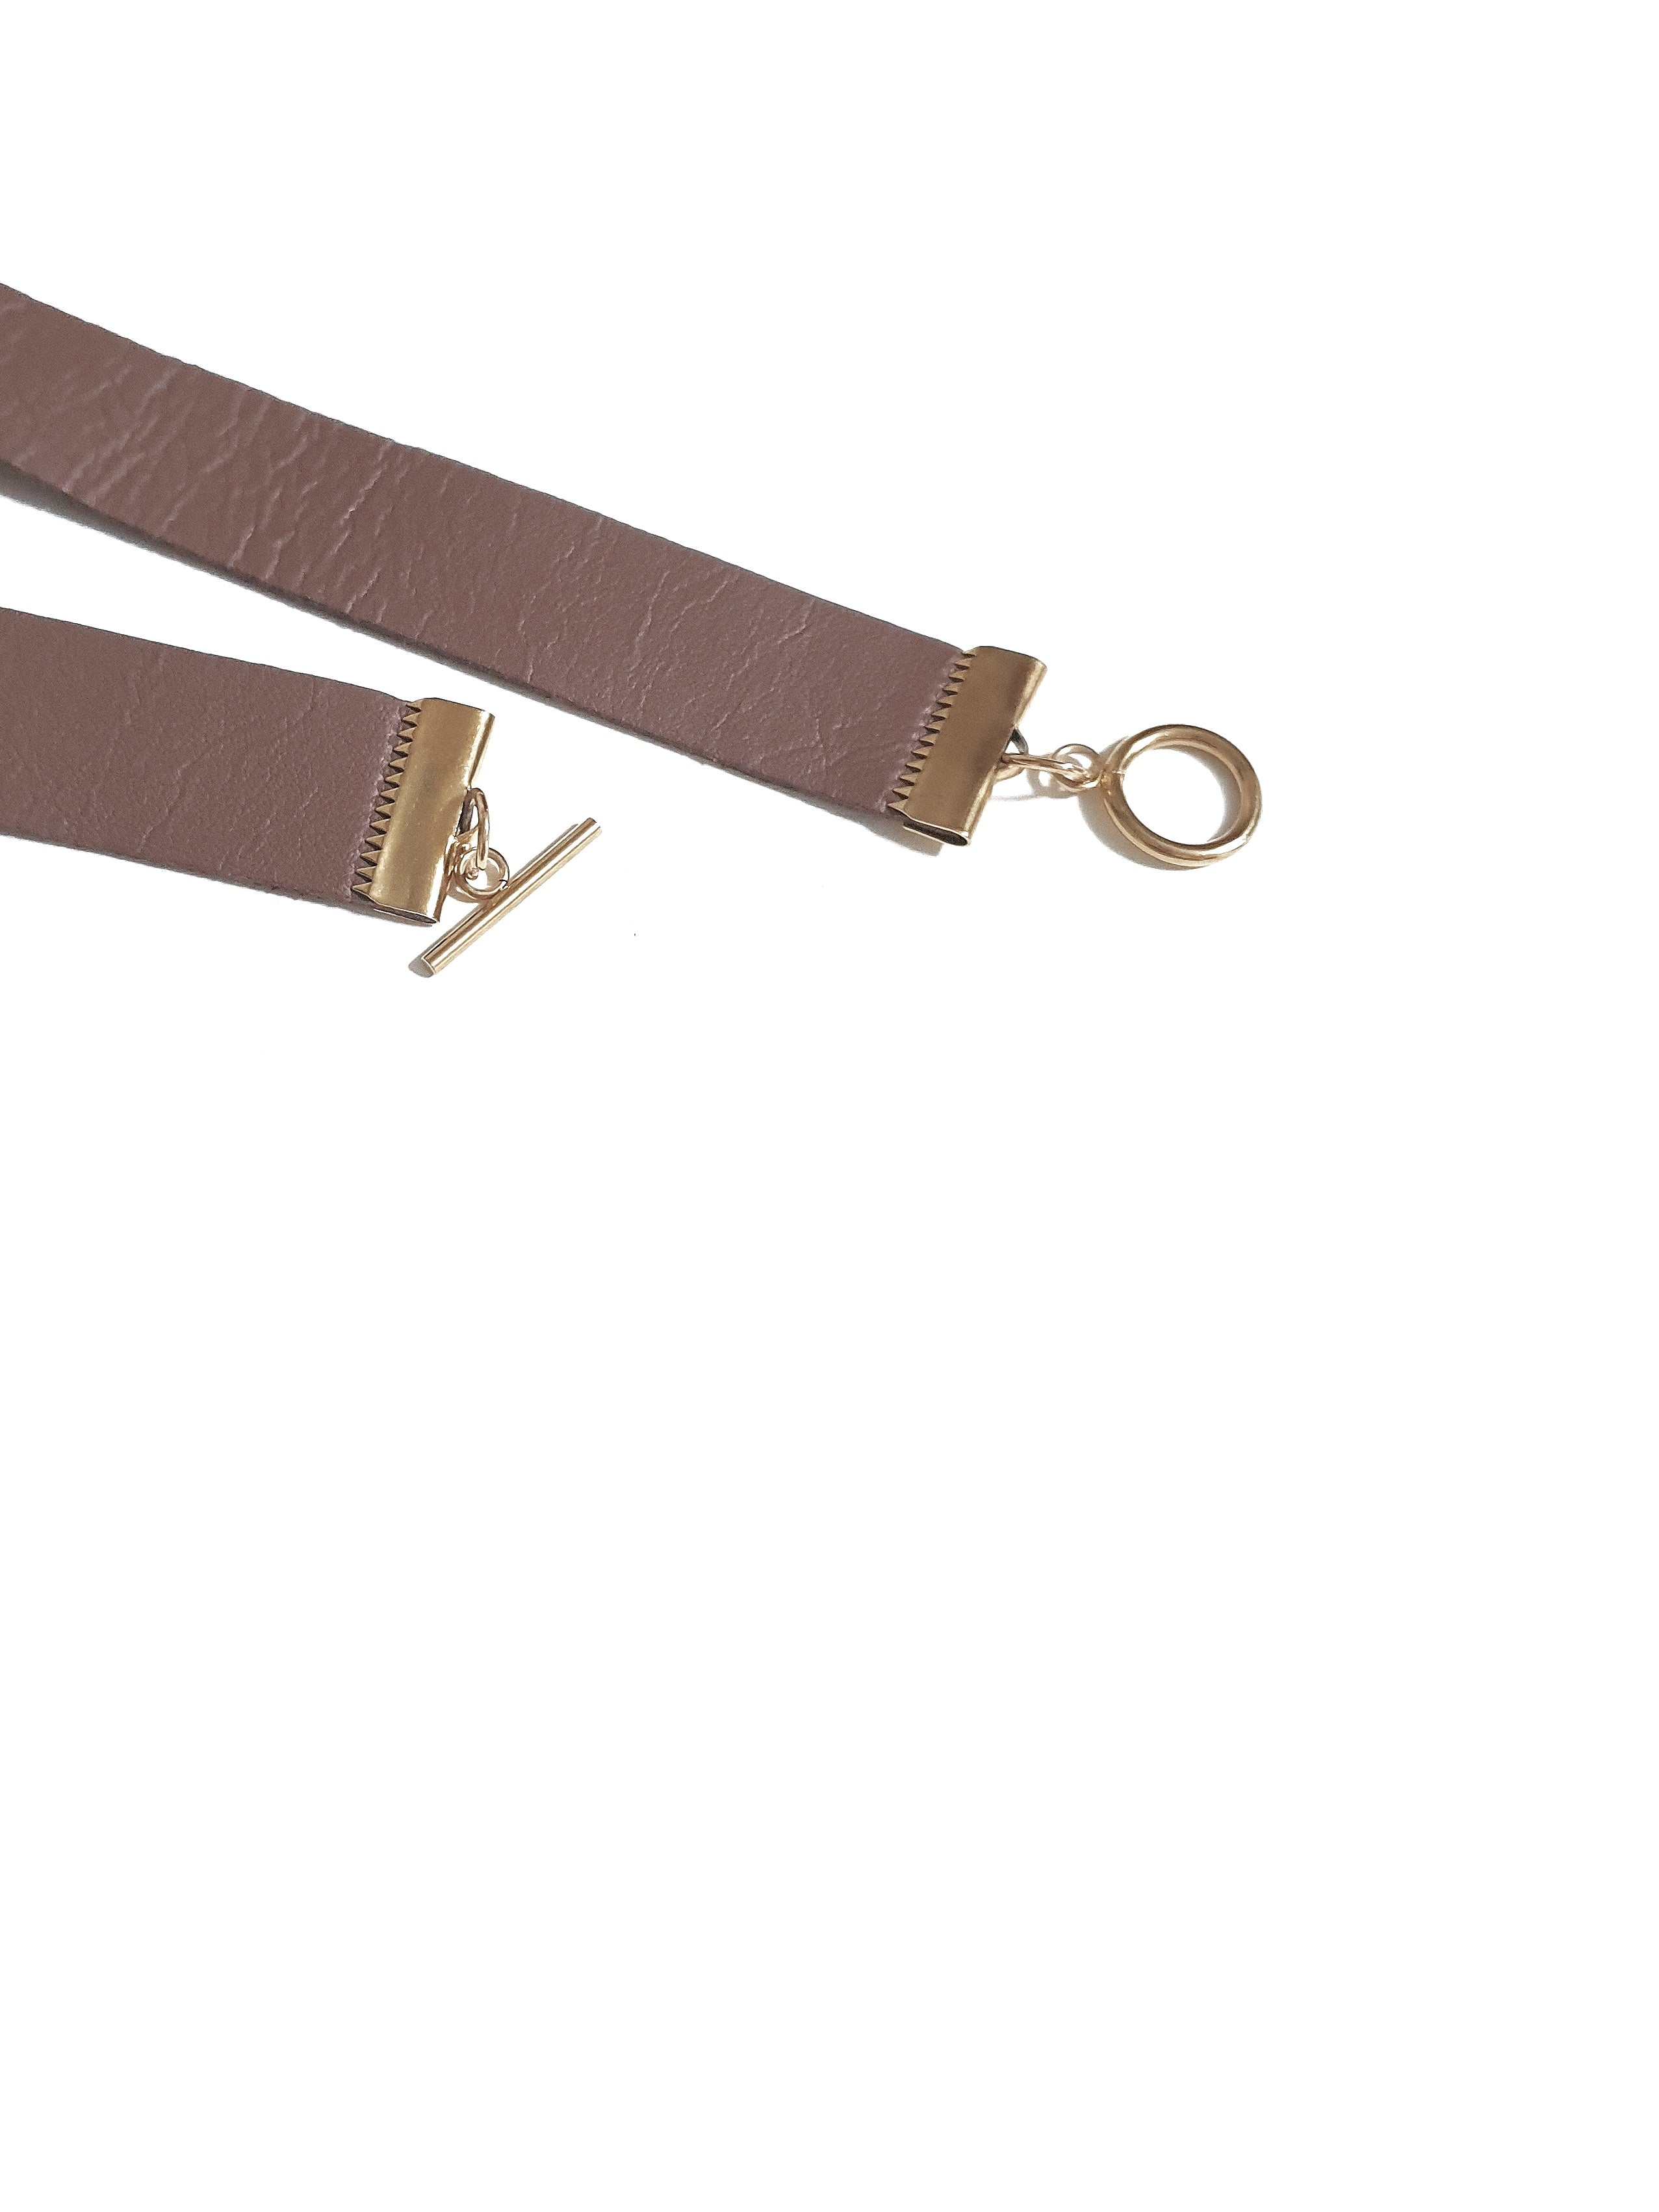 Provision | Neck Straps with Gold Toggle Clasps - YARD YARN - Handcrafted Jewelry - Singapore